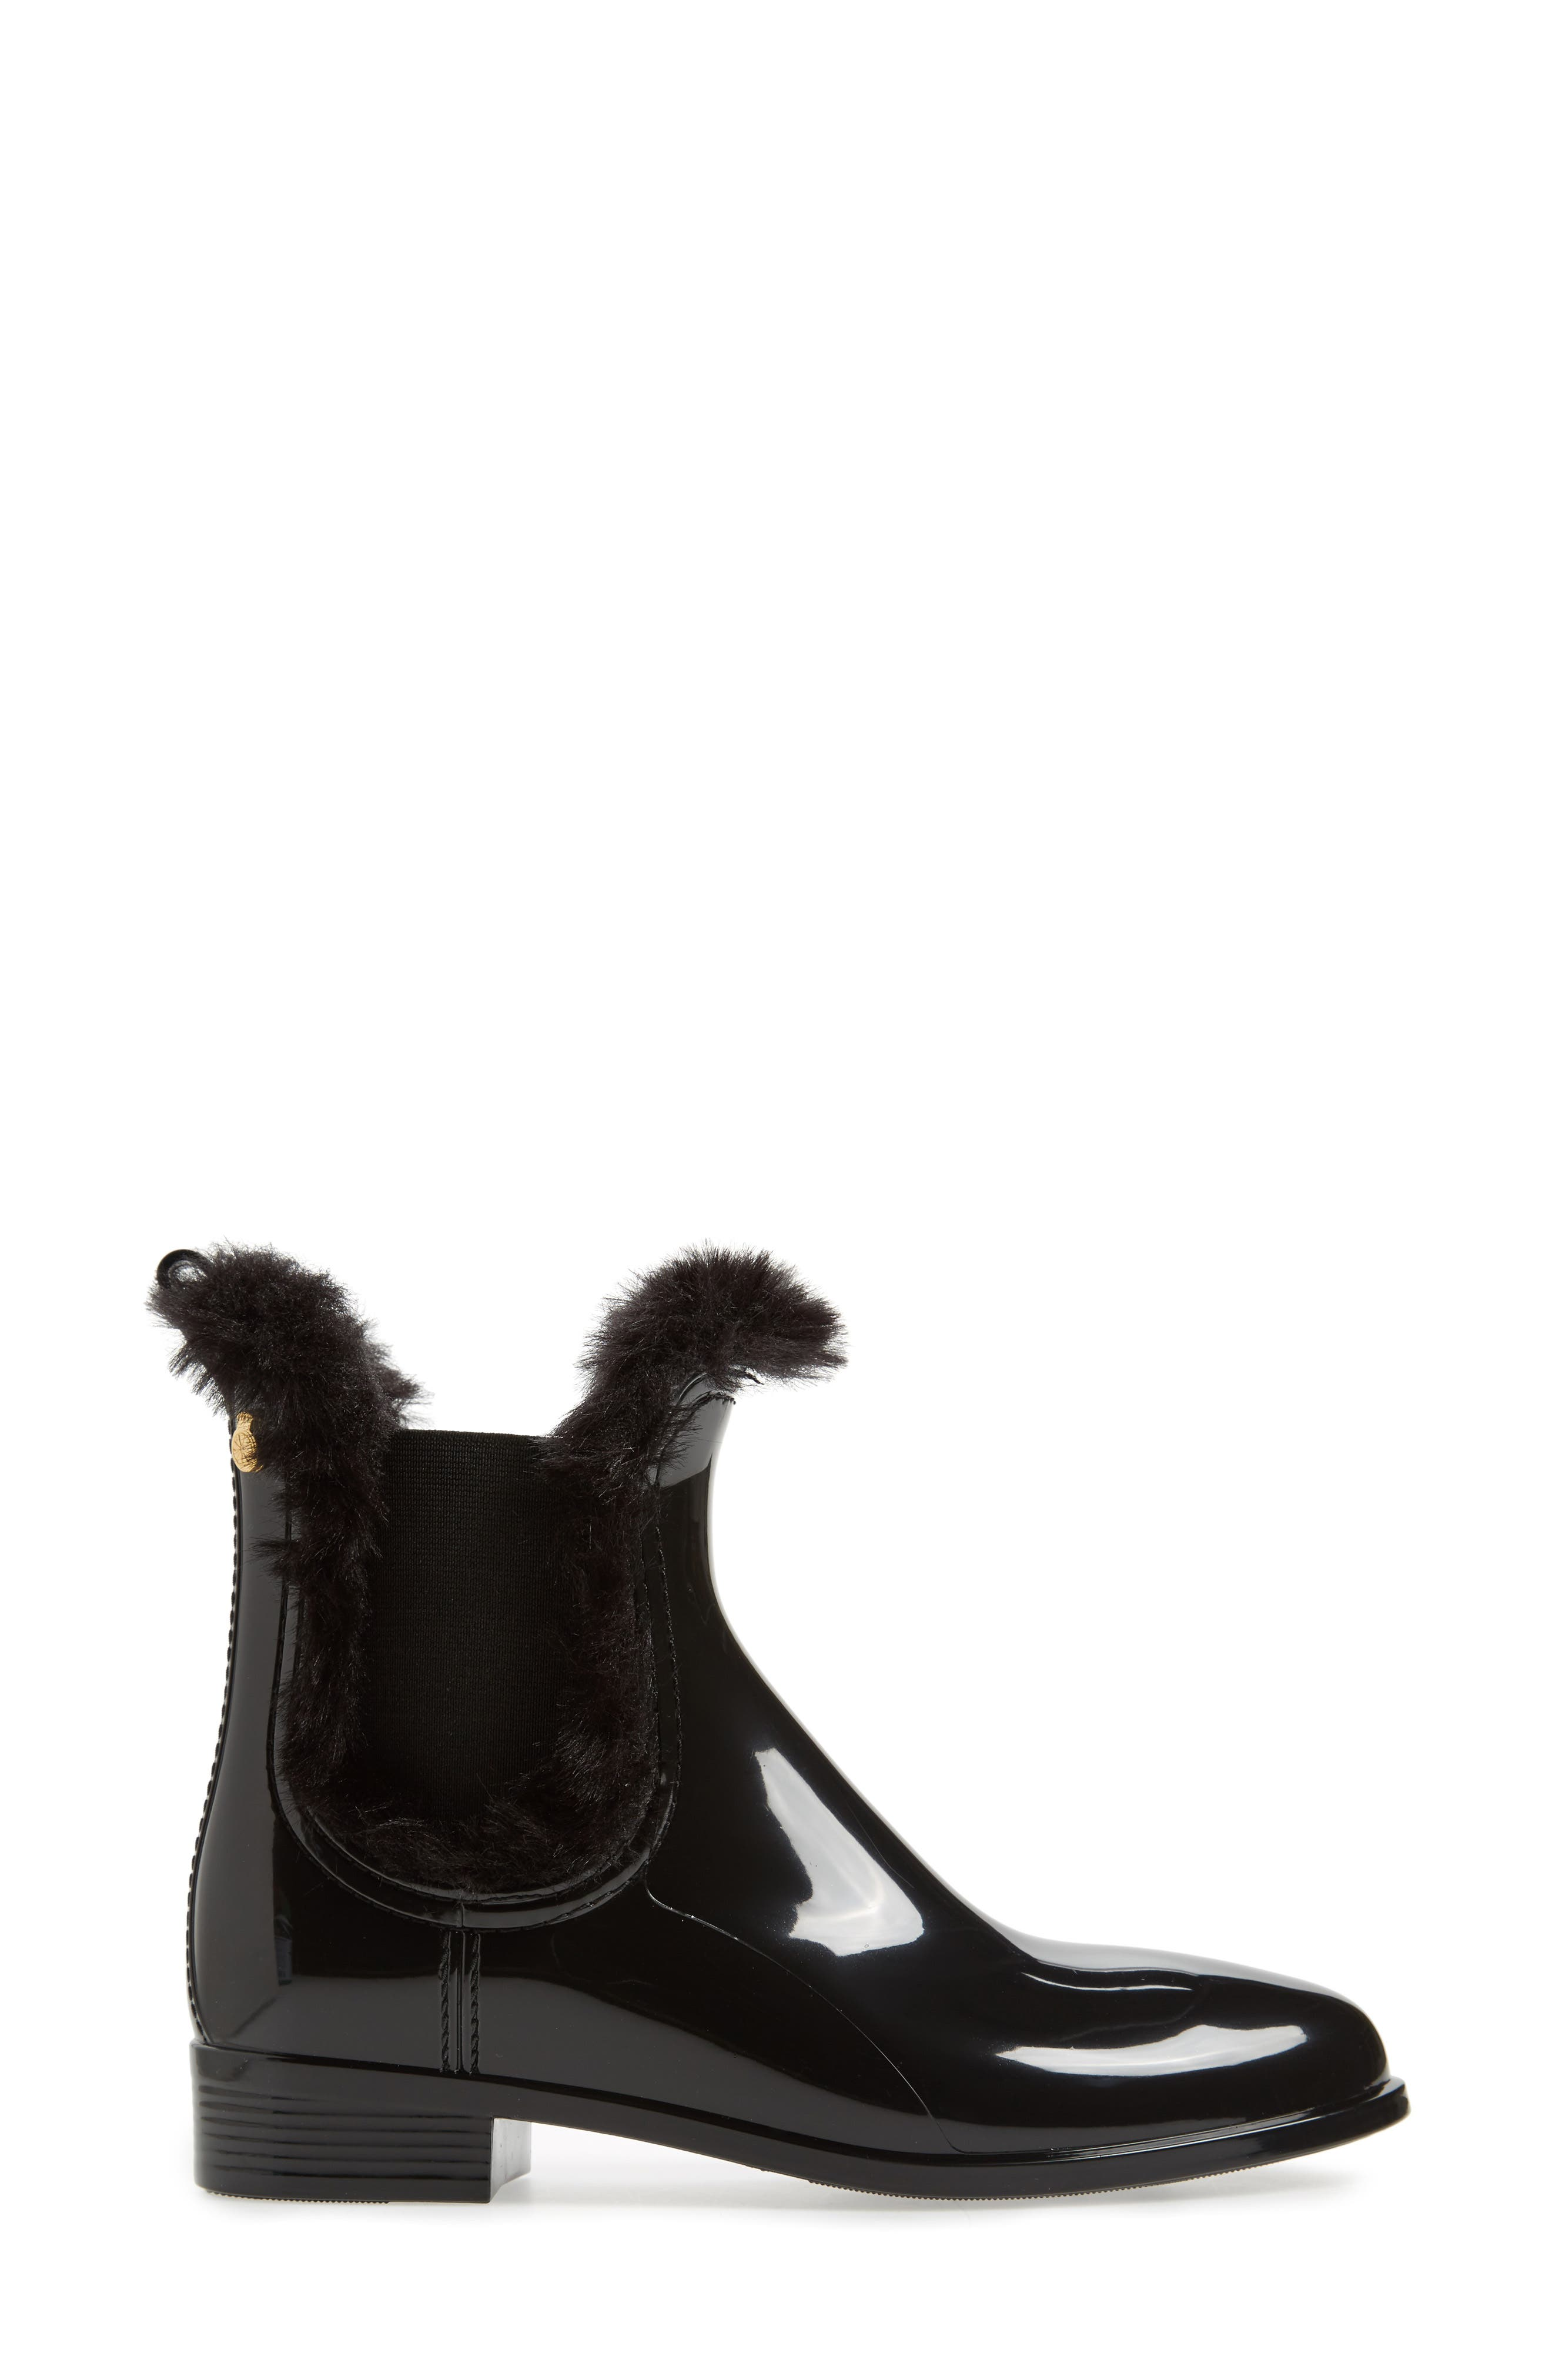 Aisha Waterproof Chelsea Boot with Faux Fur Lining,                             Alternate thumbnail 3, color,                             BLACK GLOSS